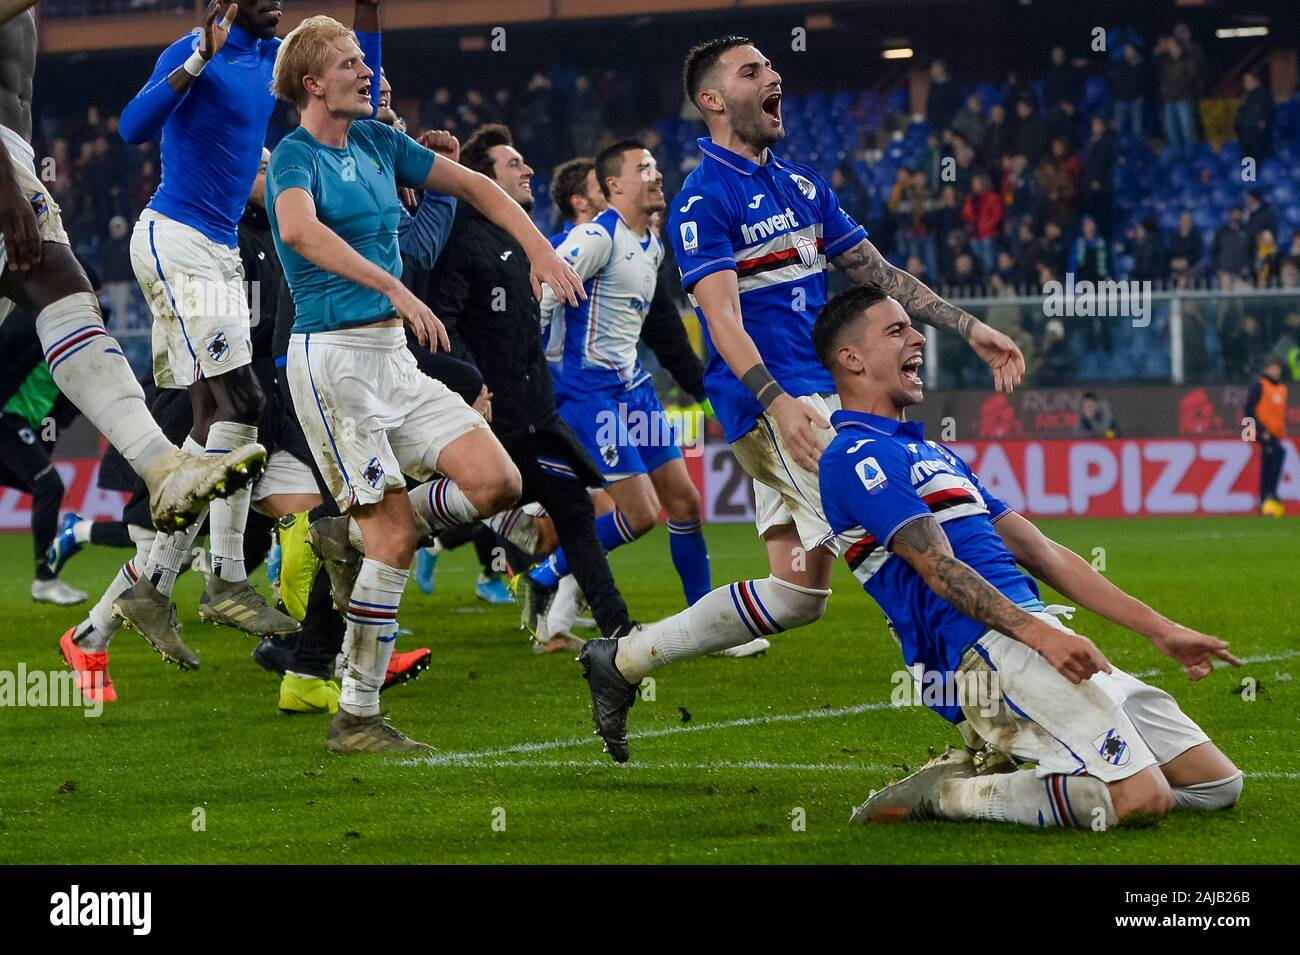 Genoa, Italy - 14 December, 2019: Fabio Depaoli (R) of UC Sampdoria and Nicola Murru (2nd from R) of UC Sampdoria celebrates the victory with their teammates at the end of the Serie A football match between Genoa CFC and UC Sampdoria. UC Sampdoria won 1-0 over Genoa CFC. Credit: Nicolò Campo/Alamy Live News Stock Photo